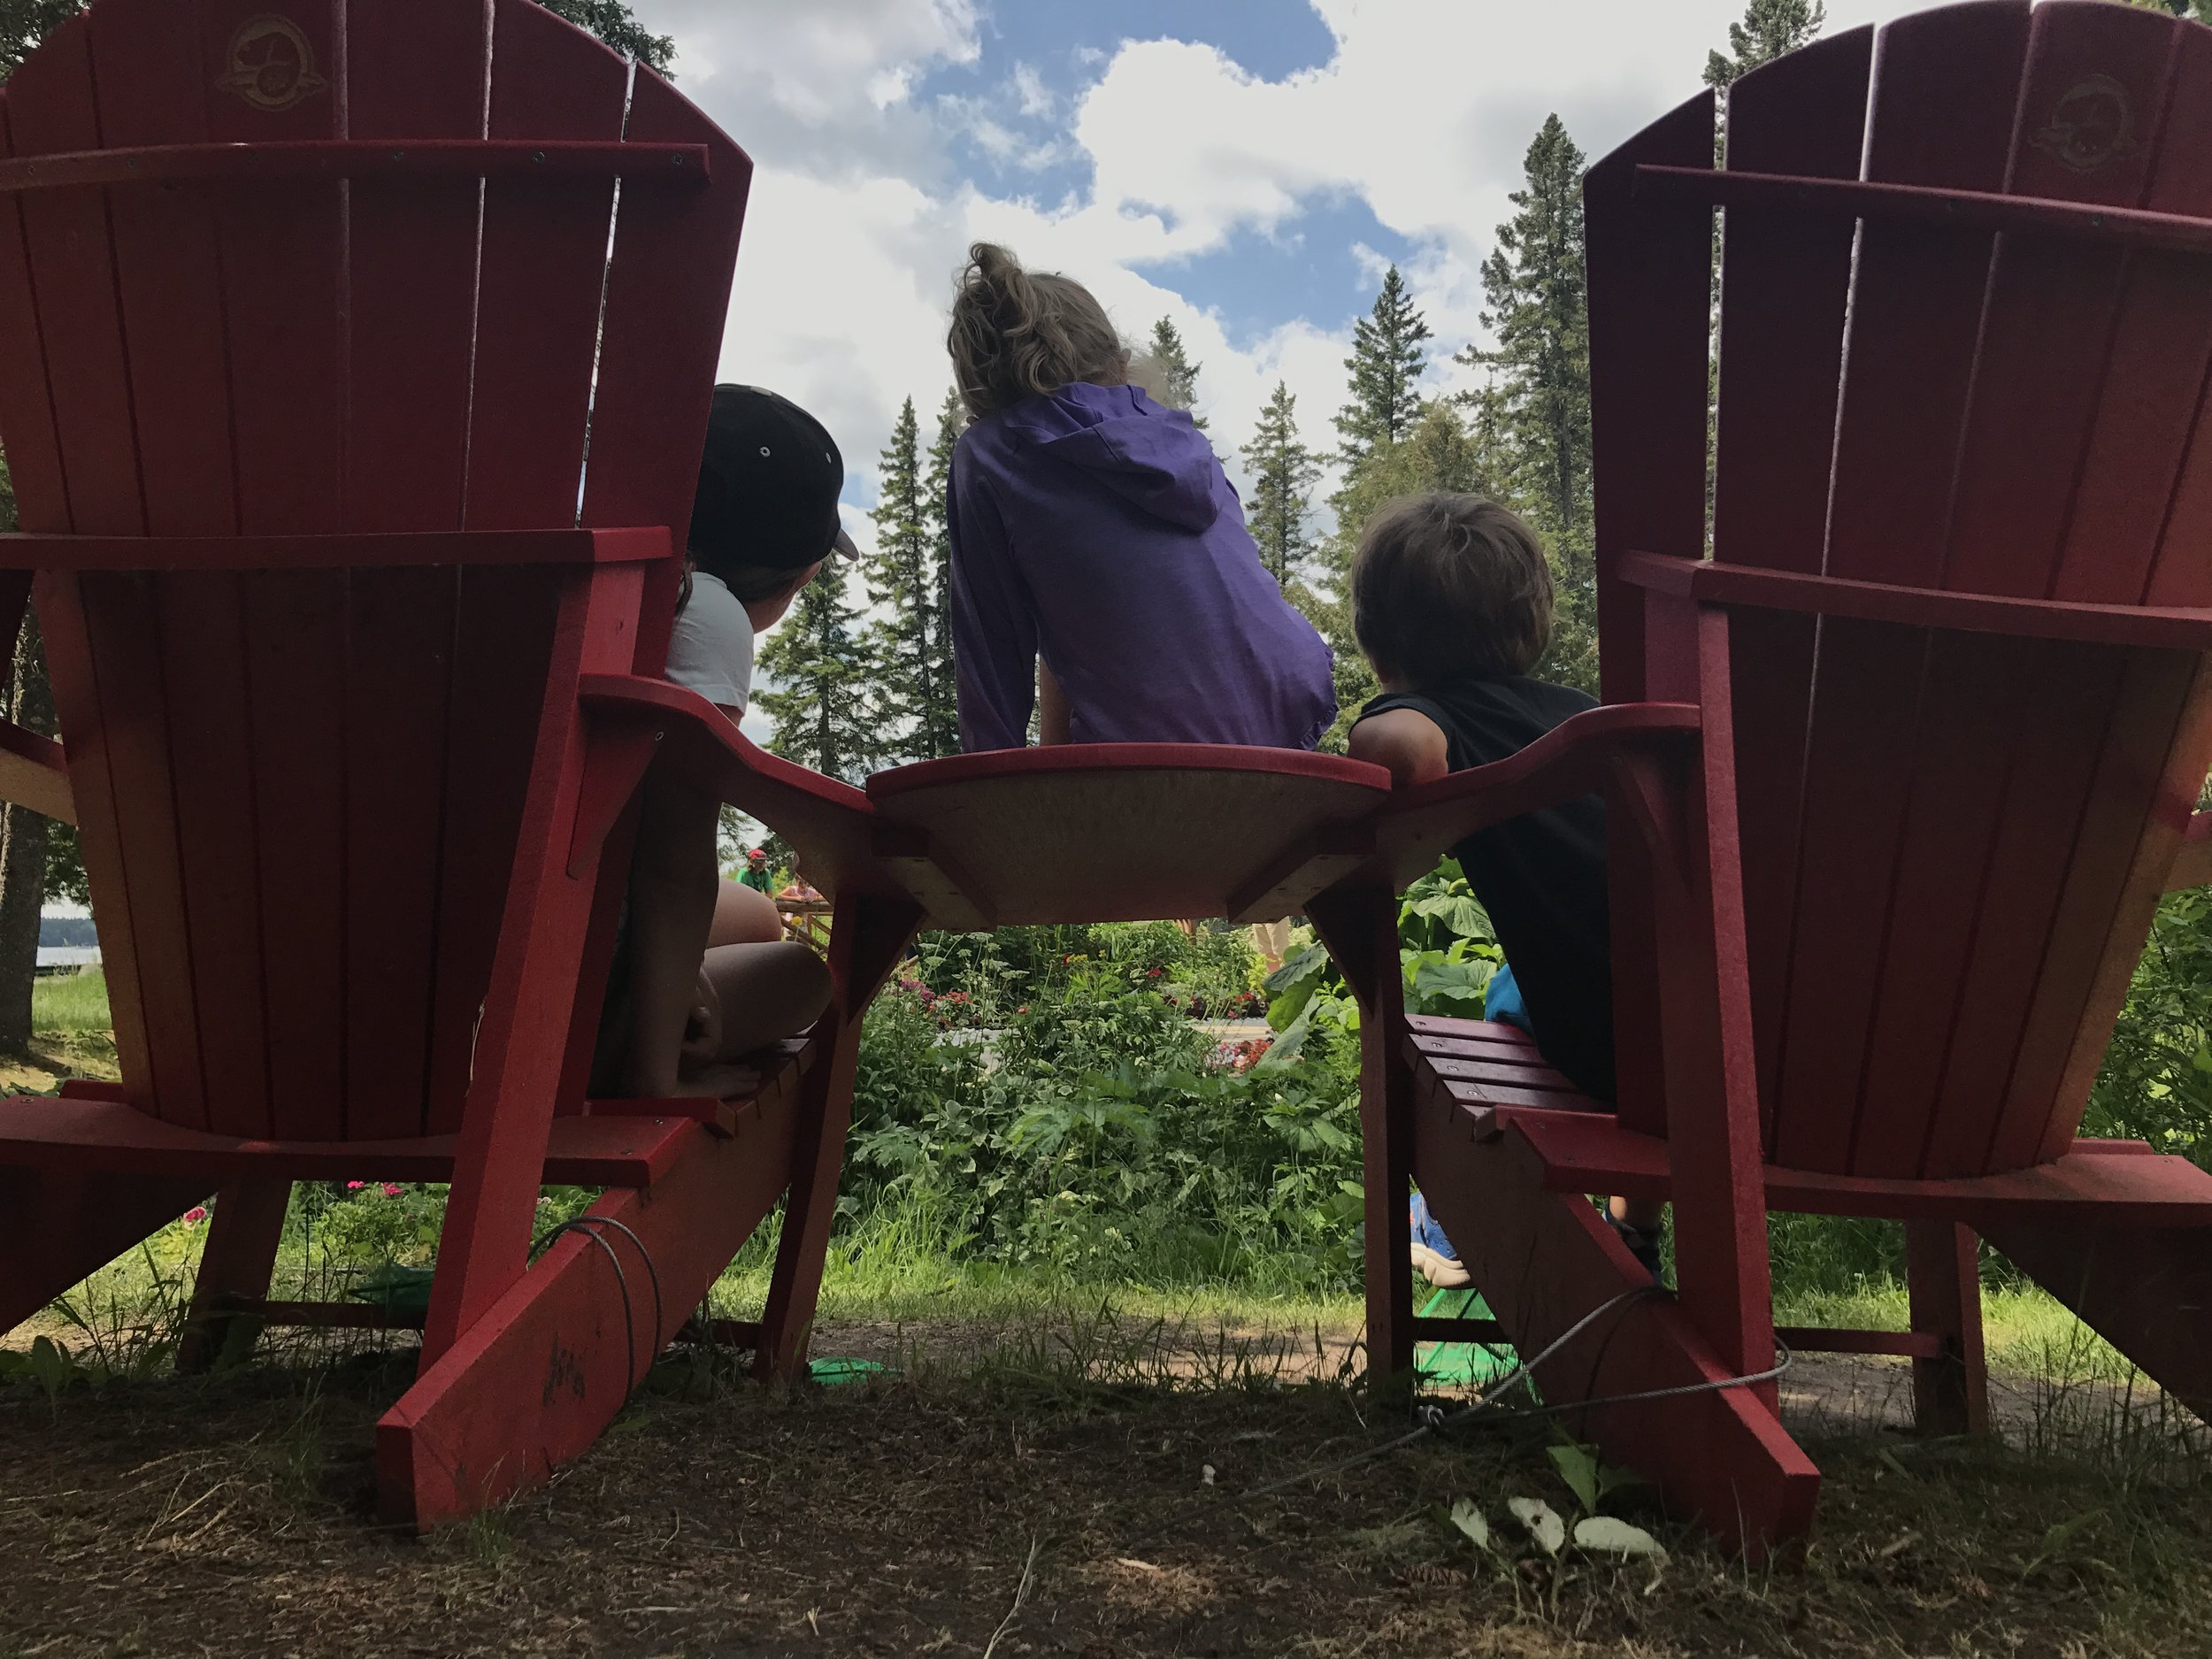 Another set of chairs in Manitoba's Riding Mountain National Park where we paused for lunch between Geocaching on the Brule Trail and searching for bison at the park's enclosure.